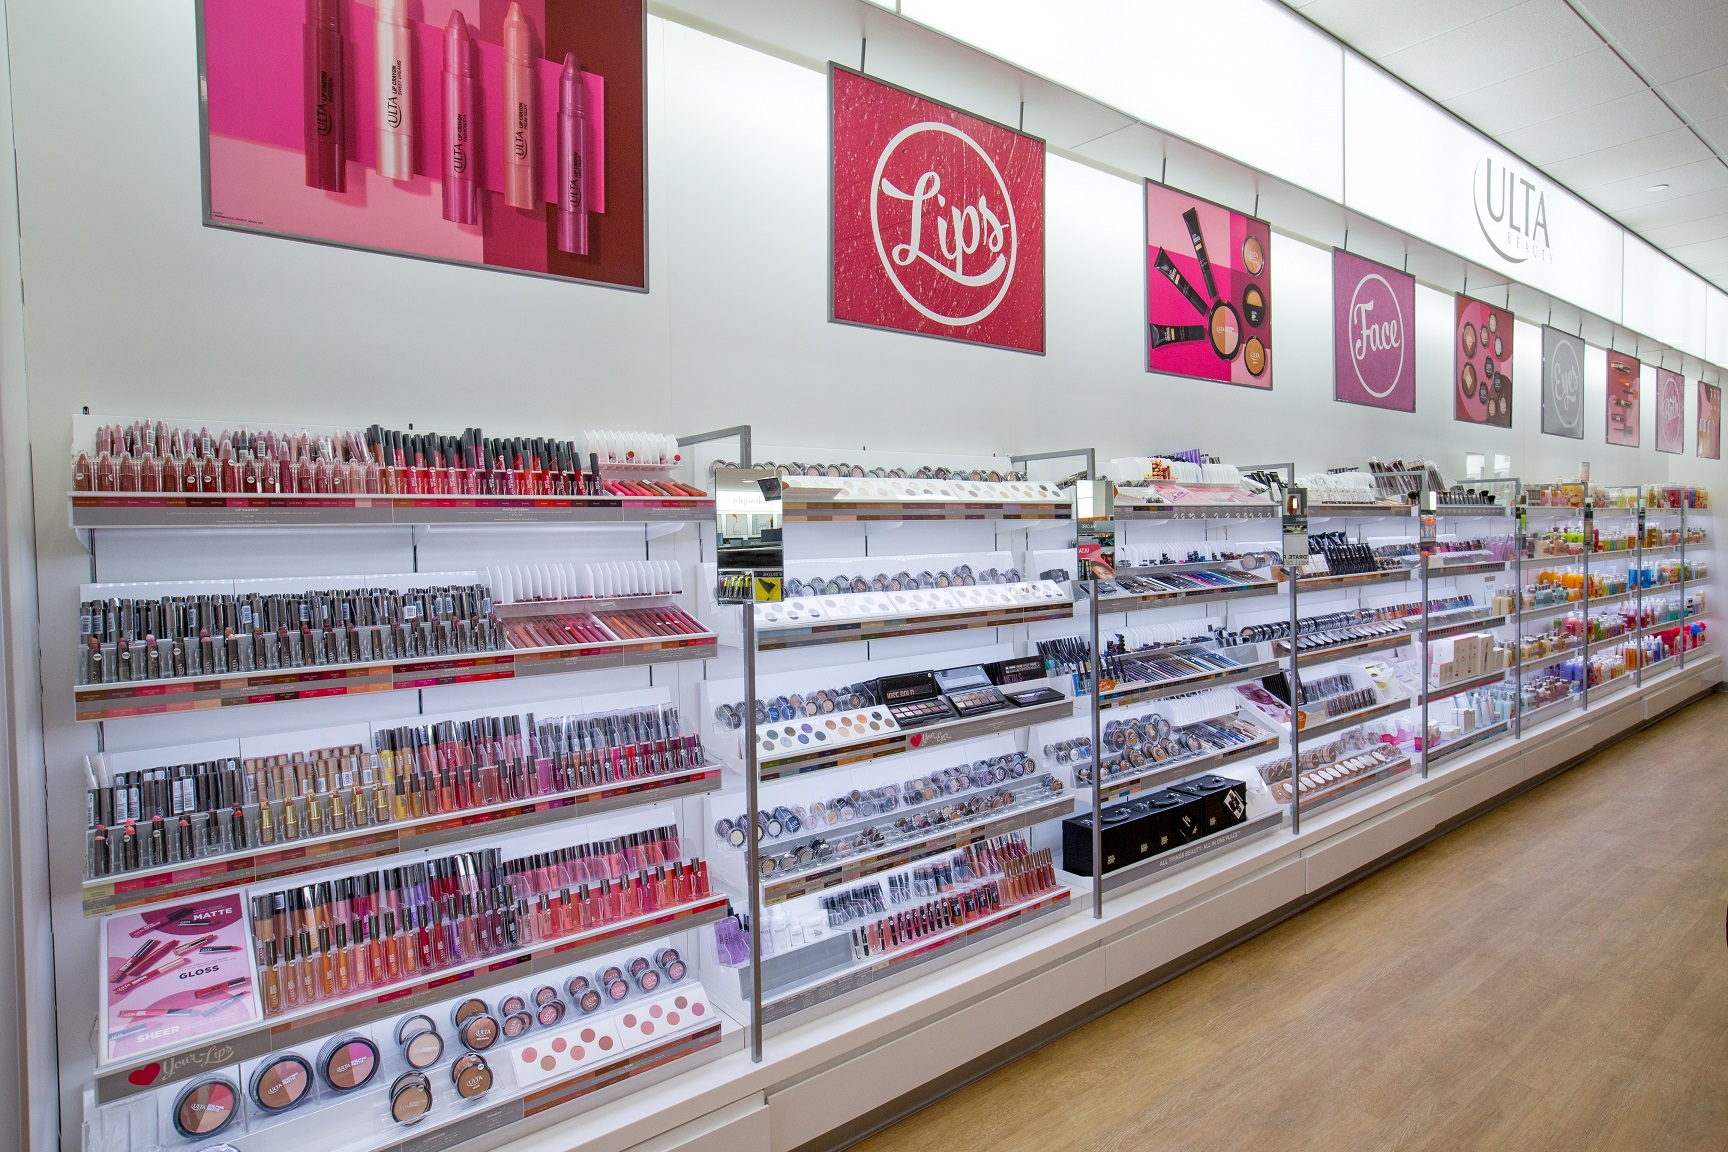 Ulta Beauty set to open its doors this month with grand opening